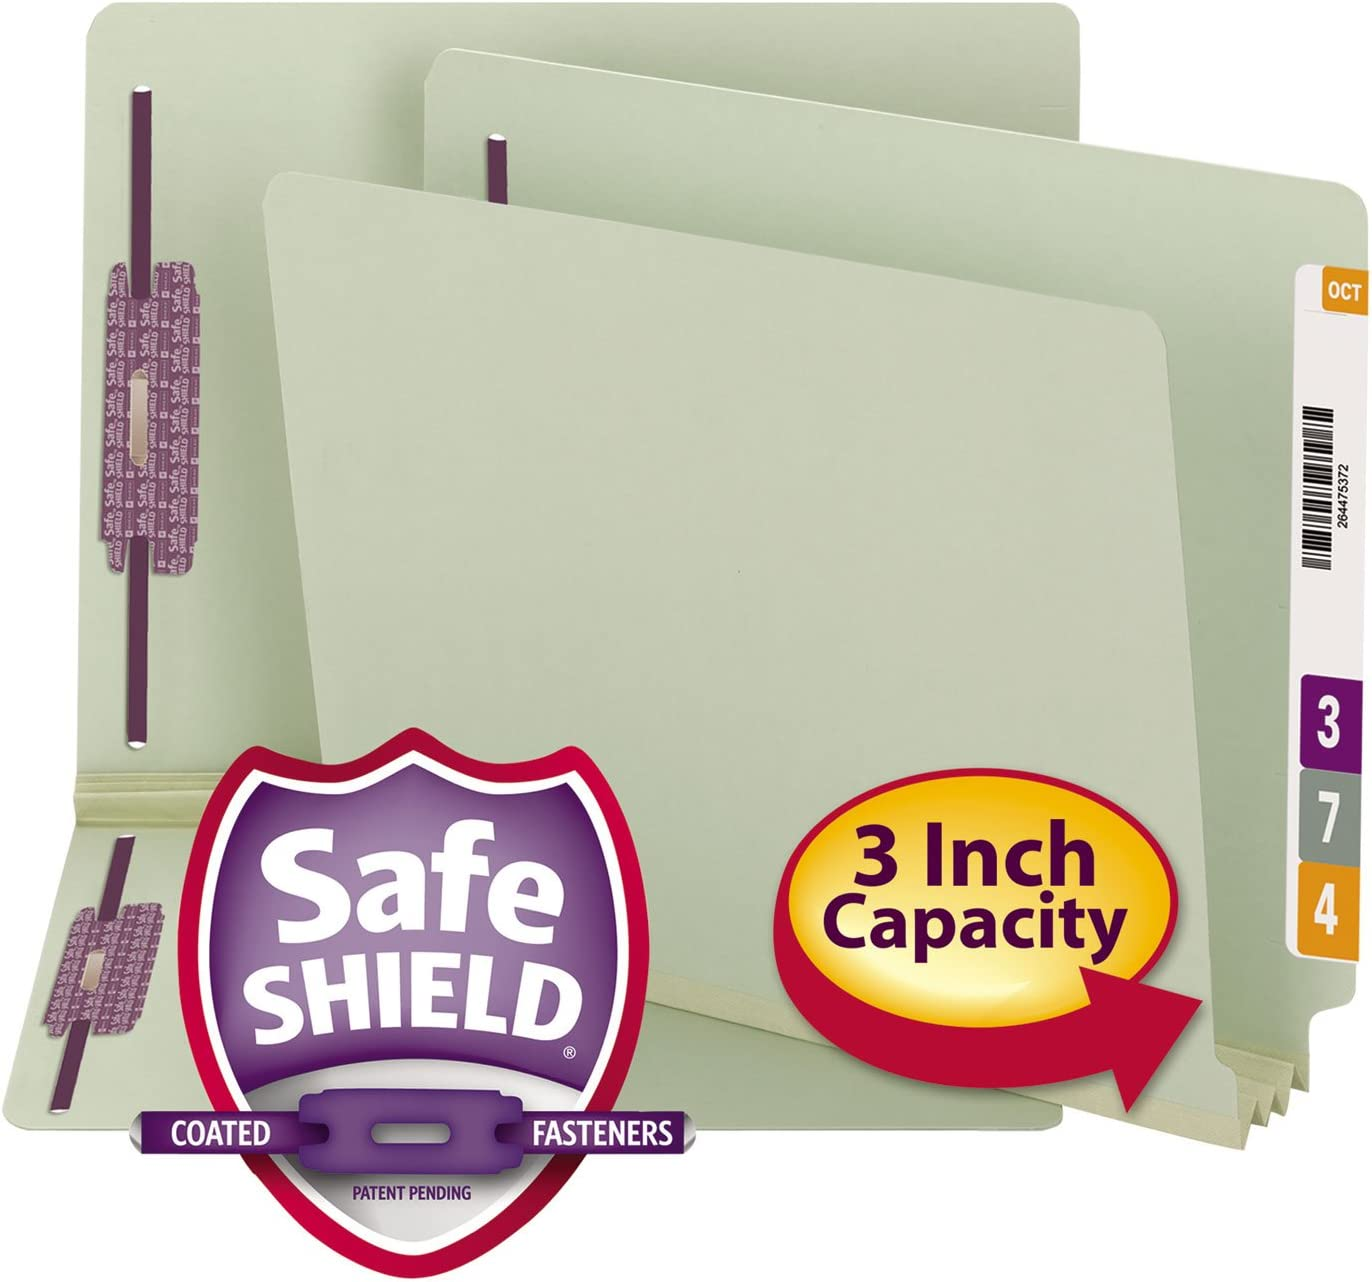 SMD34725 - Smead Spasm price Three Inch Folder Dealing full price reduction Expansion